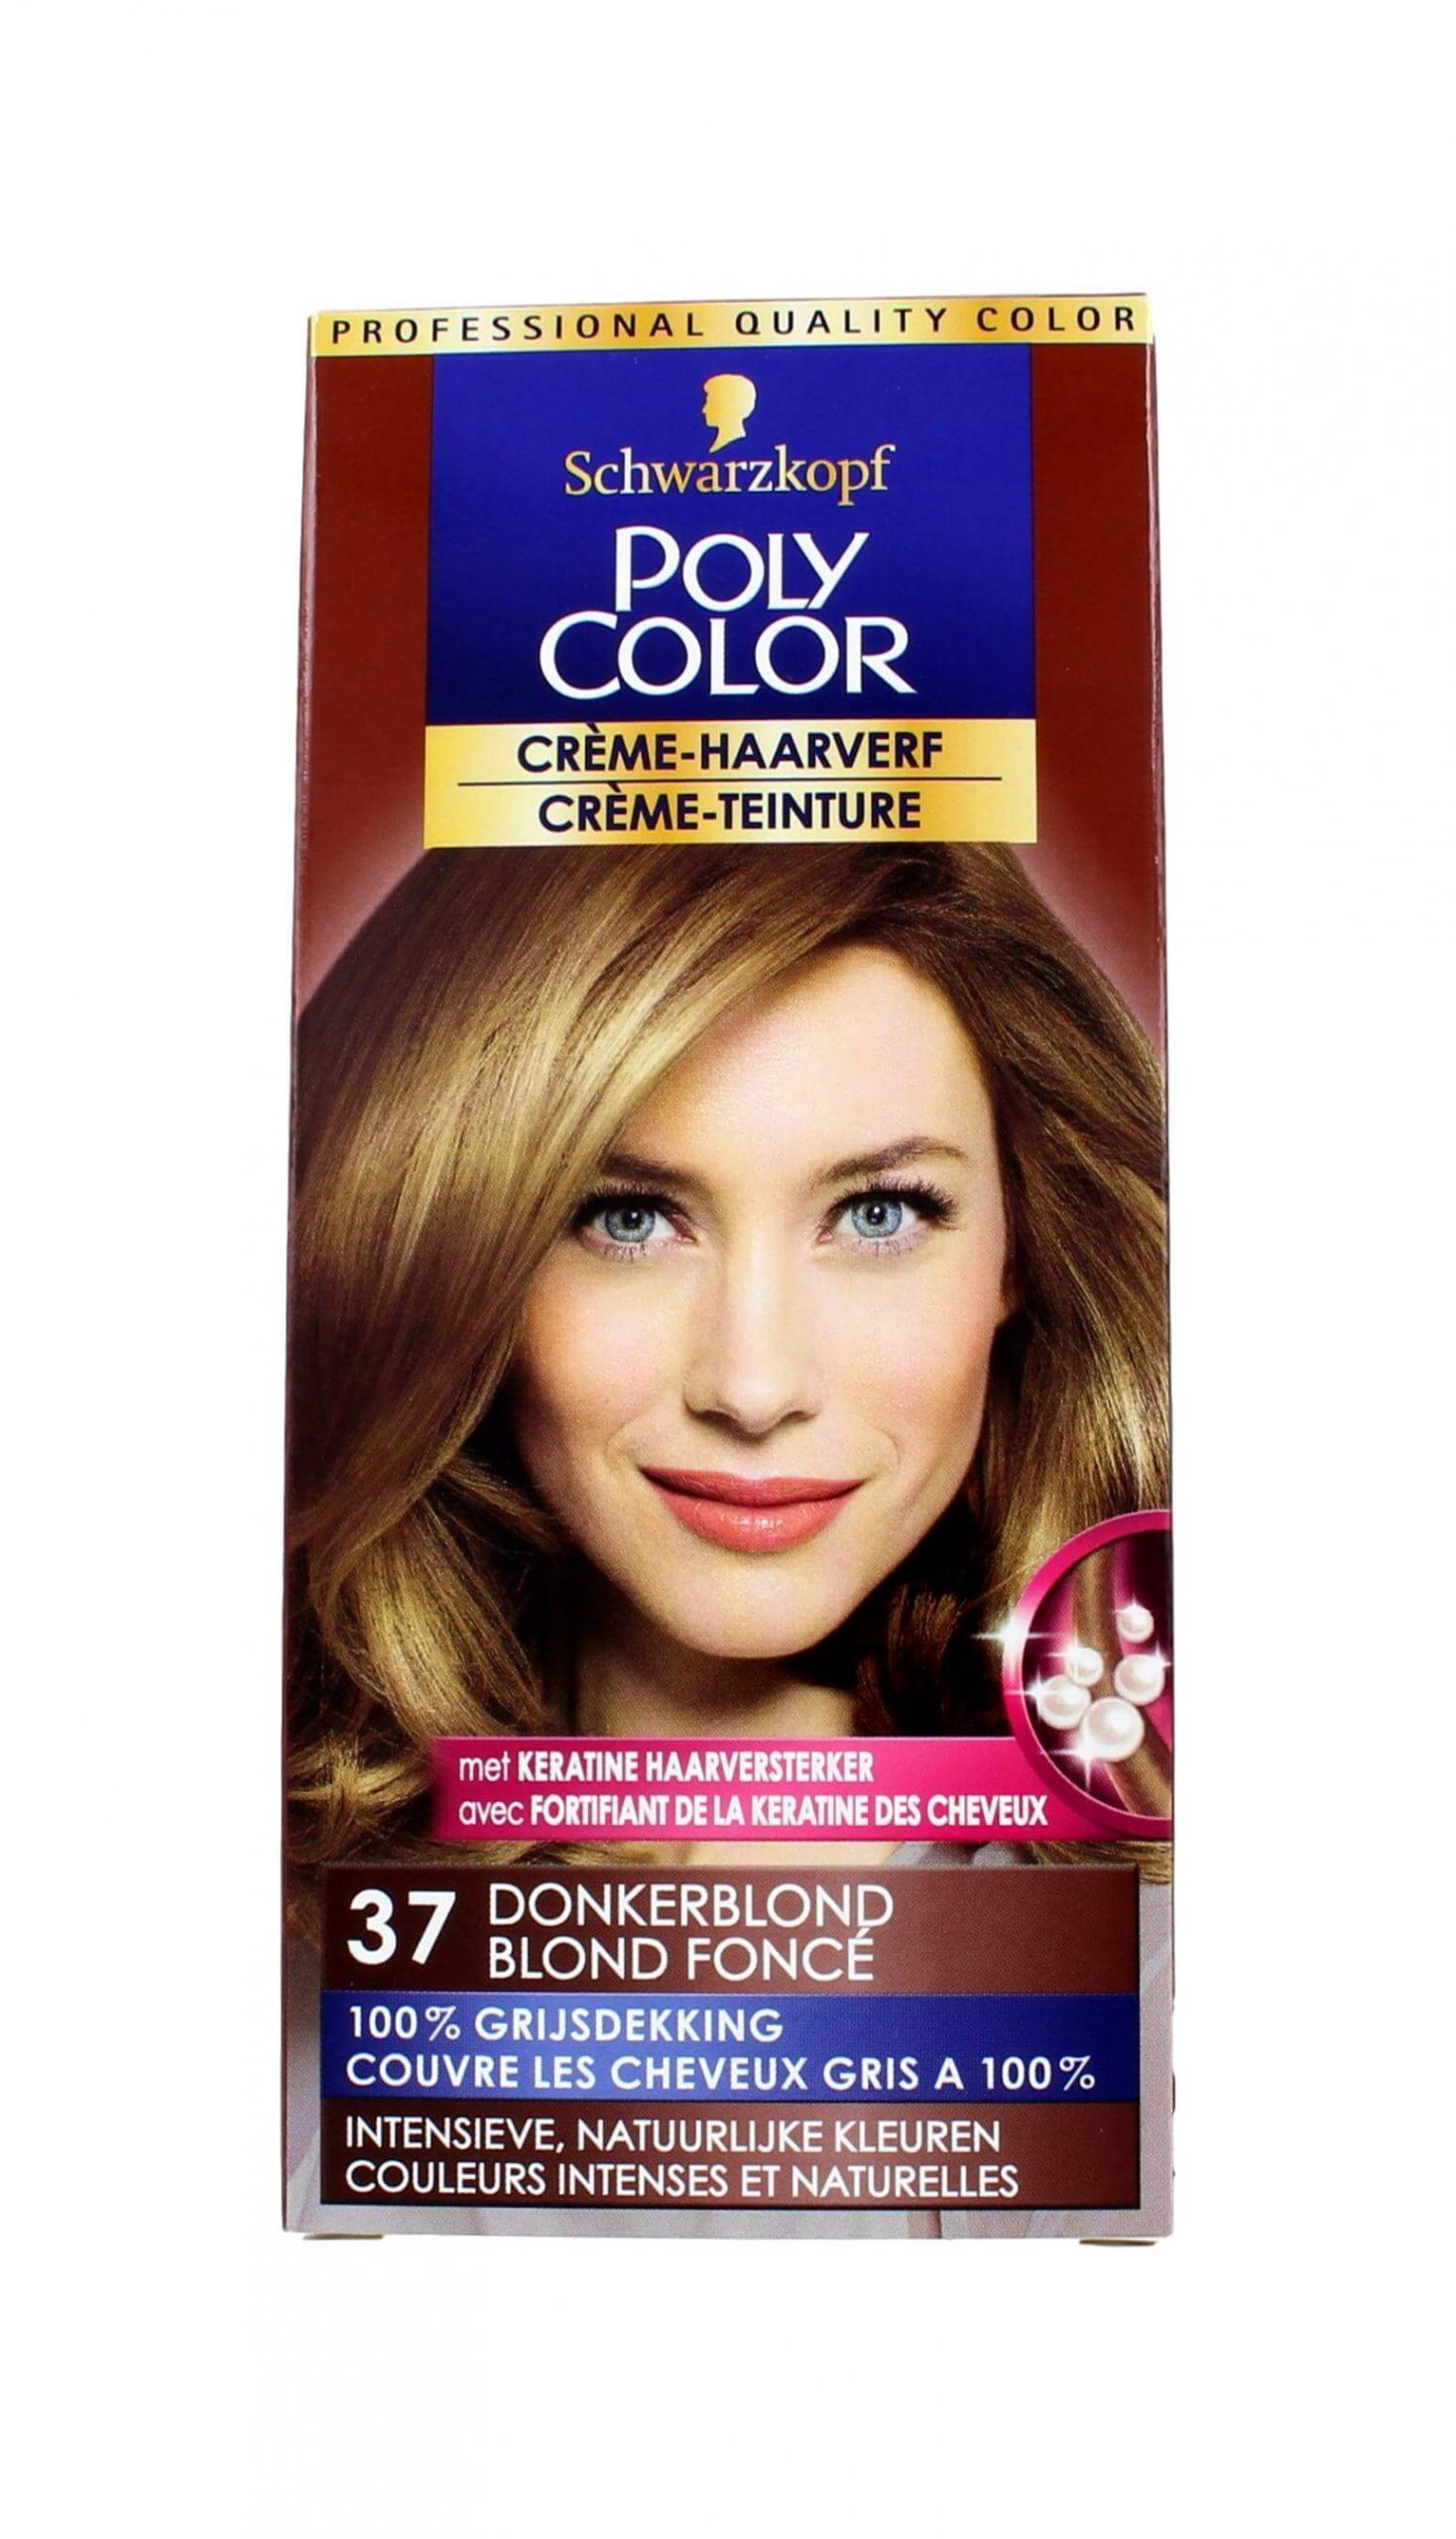 Poly Color Haarverf 37 Donkerblond